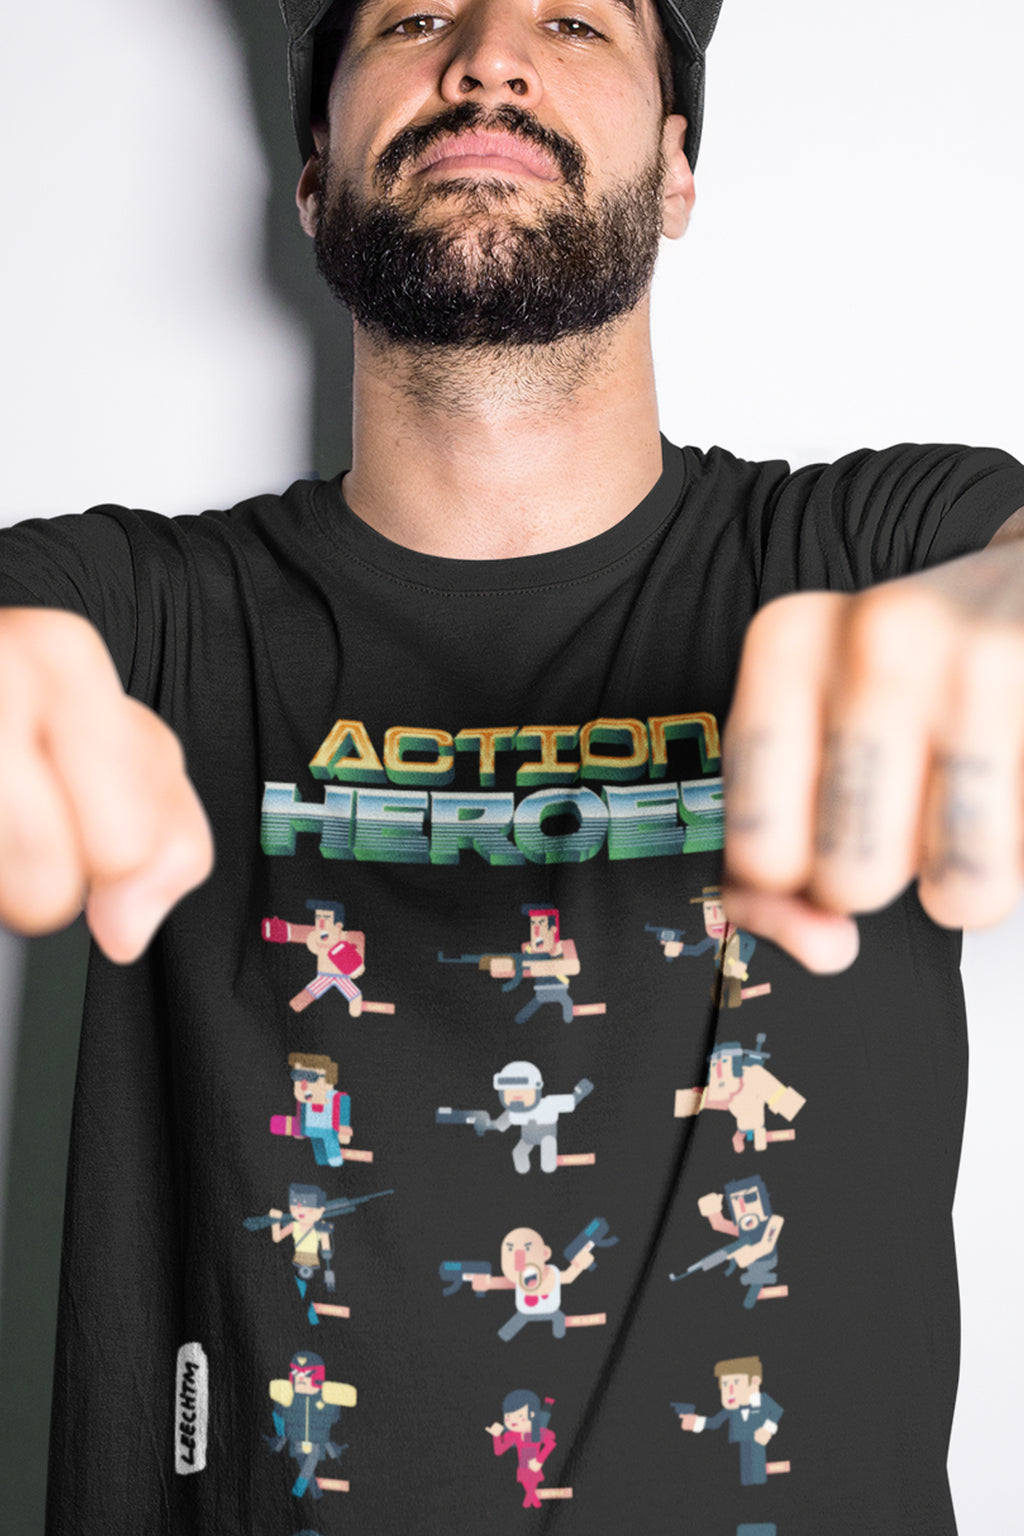 80s Action Movie Heroes Tshirt - LeechTM